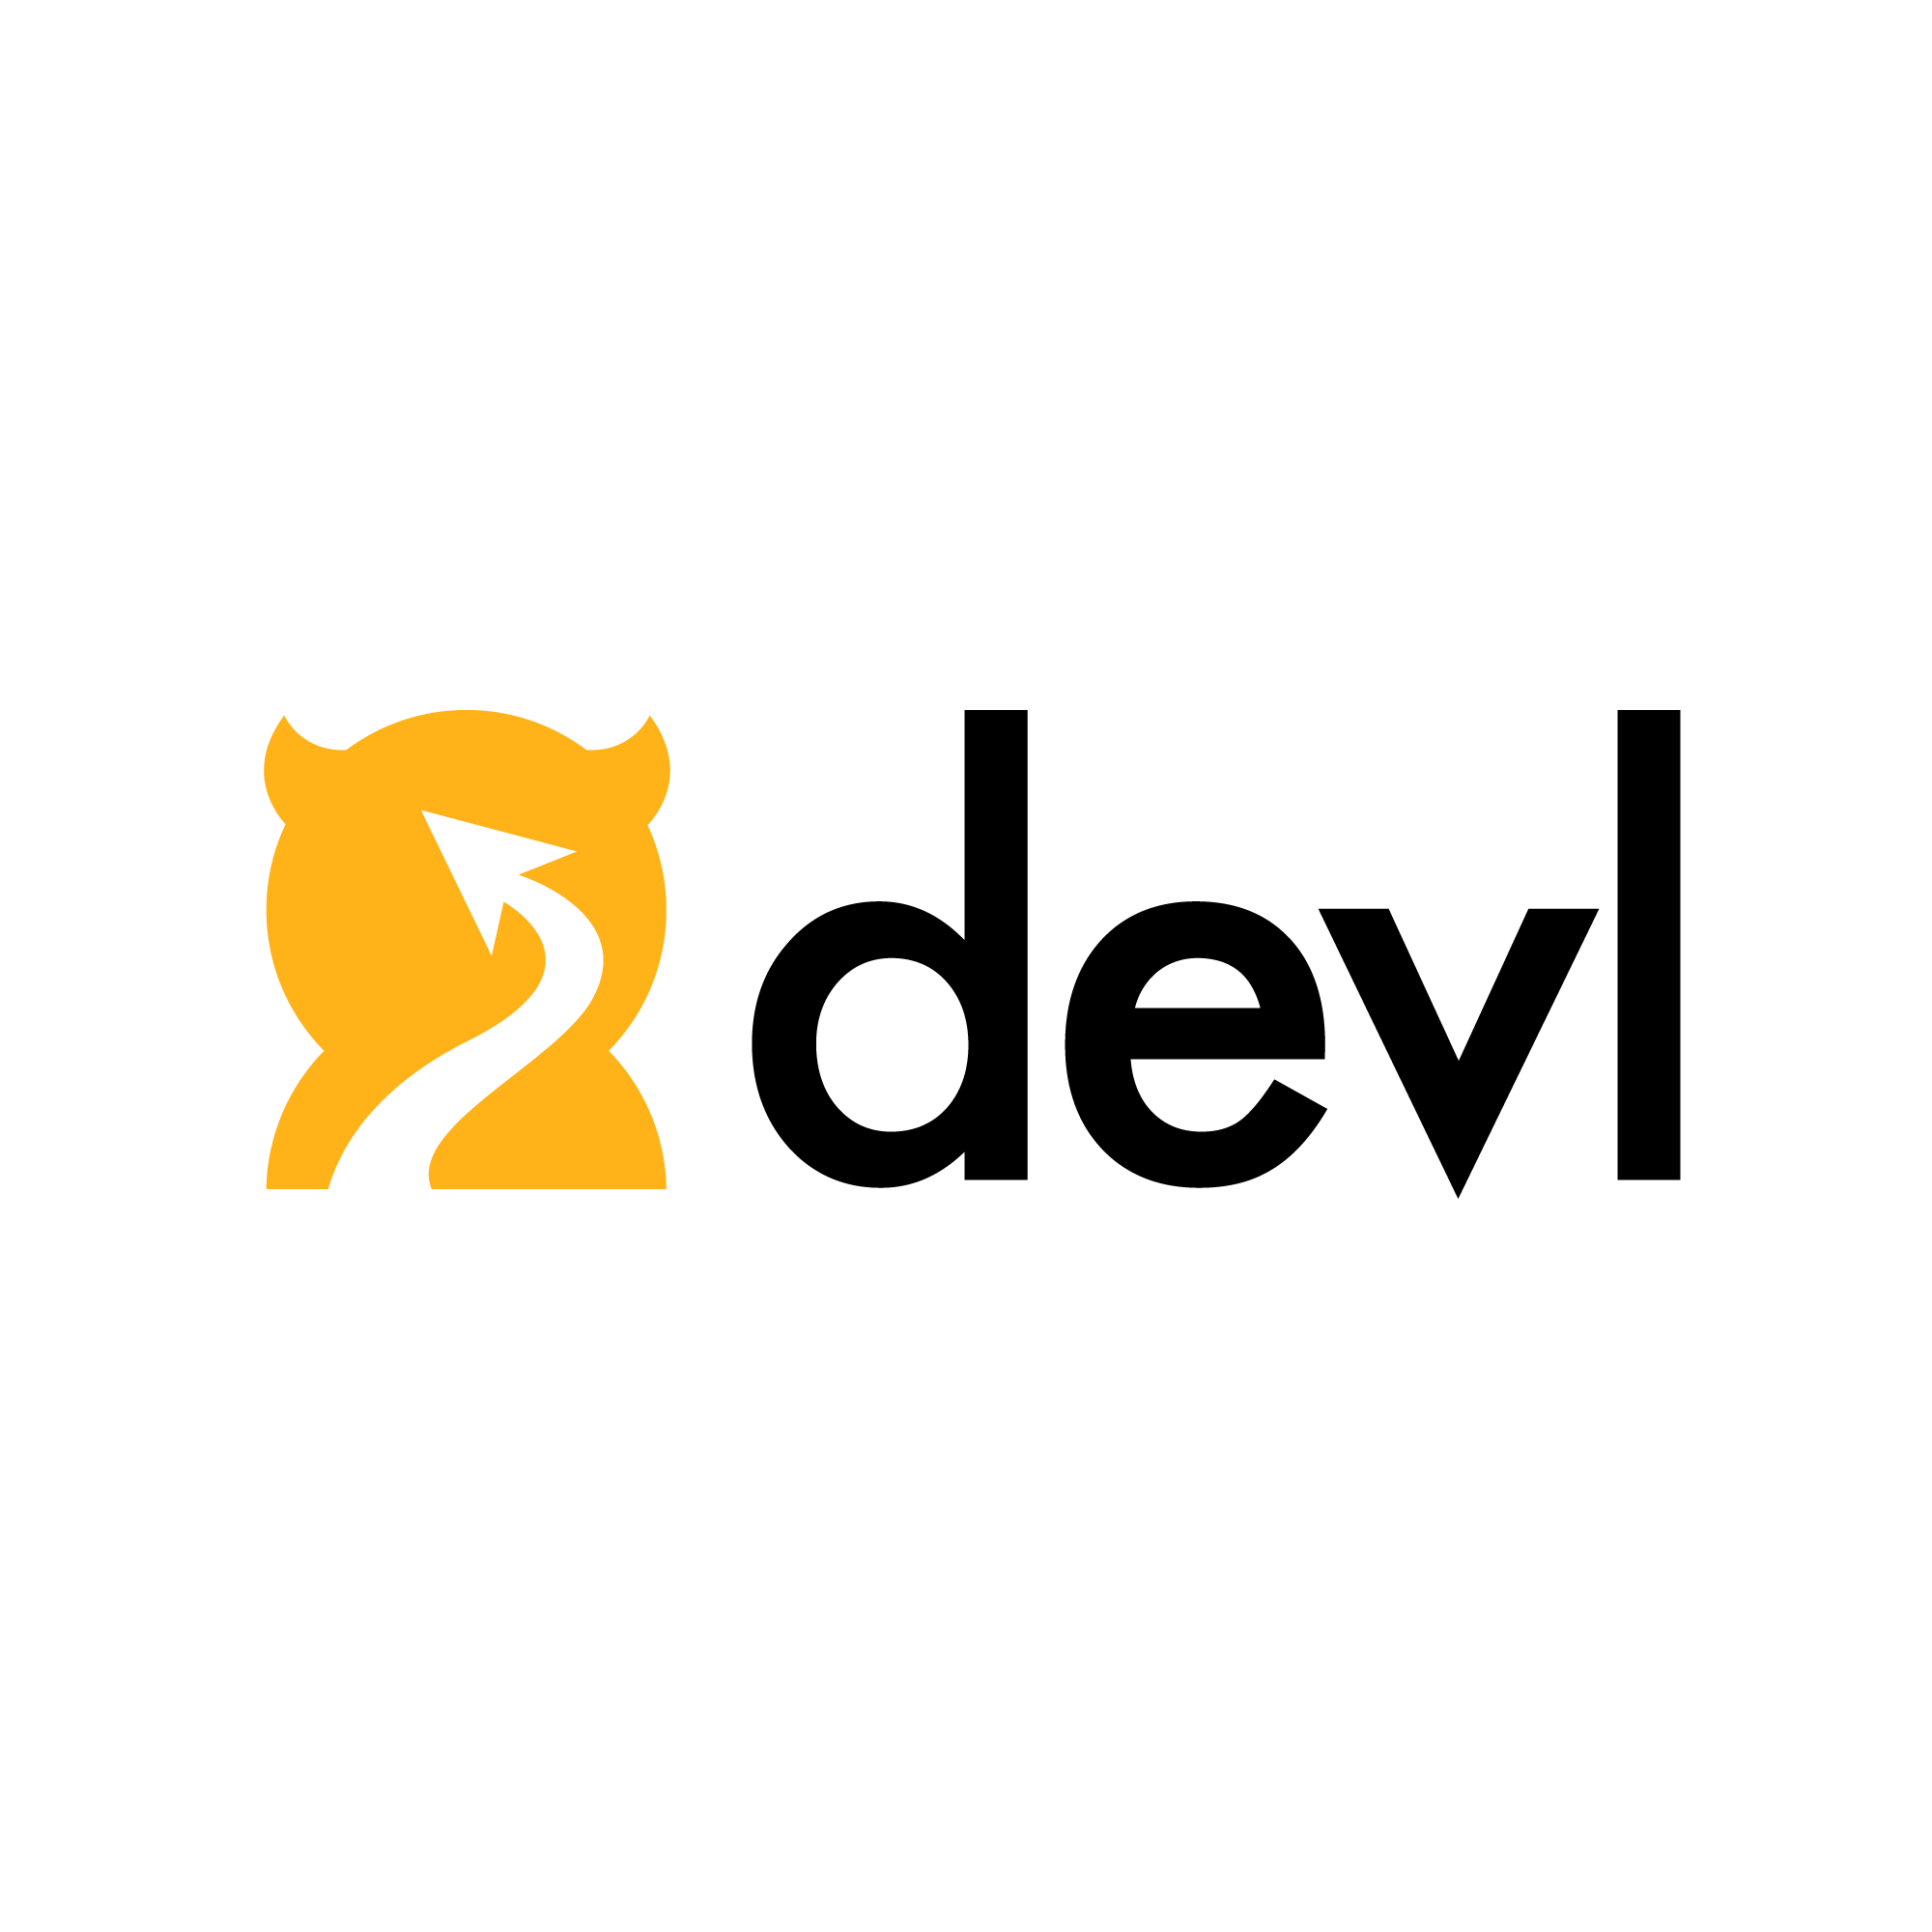 for sale devl yellow devil emblem logo cowboy for sale devl yellow devil emblem